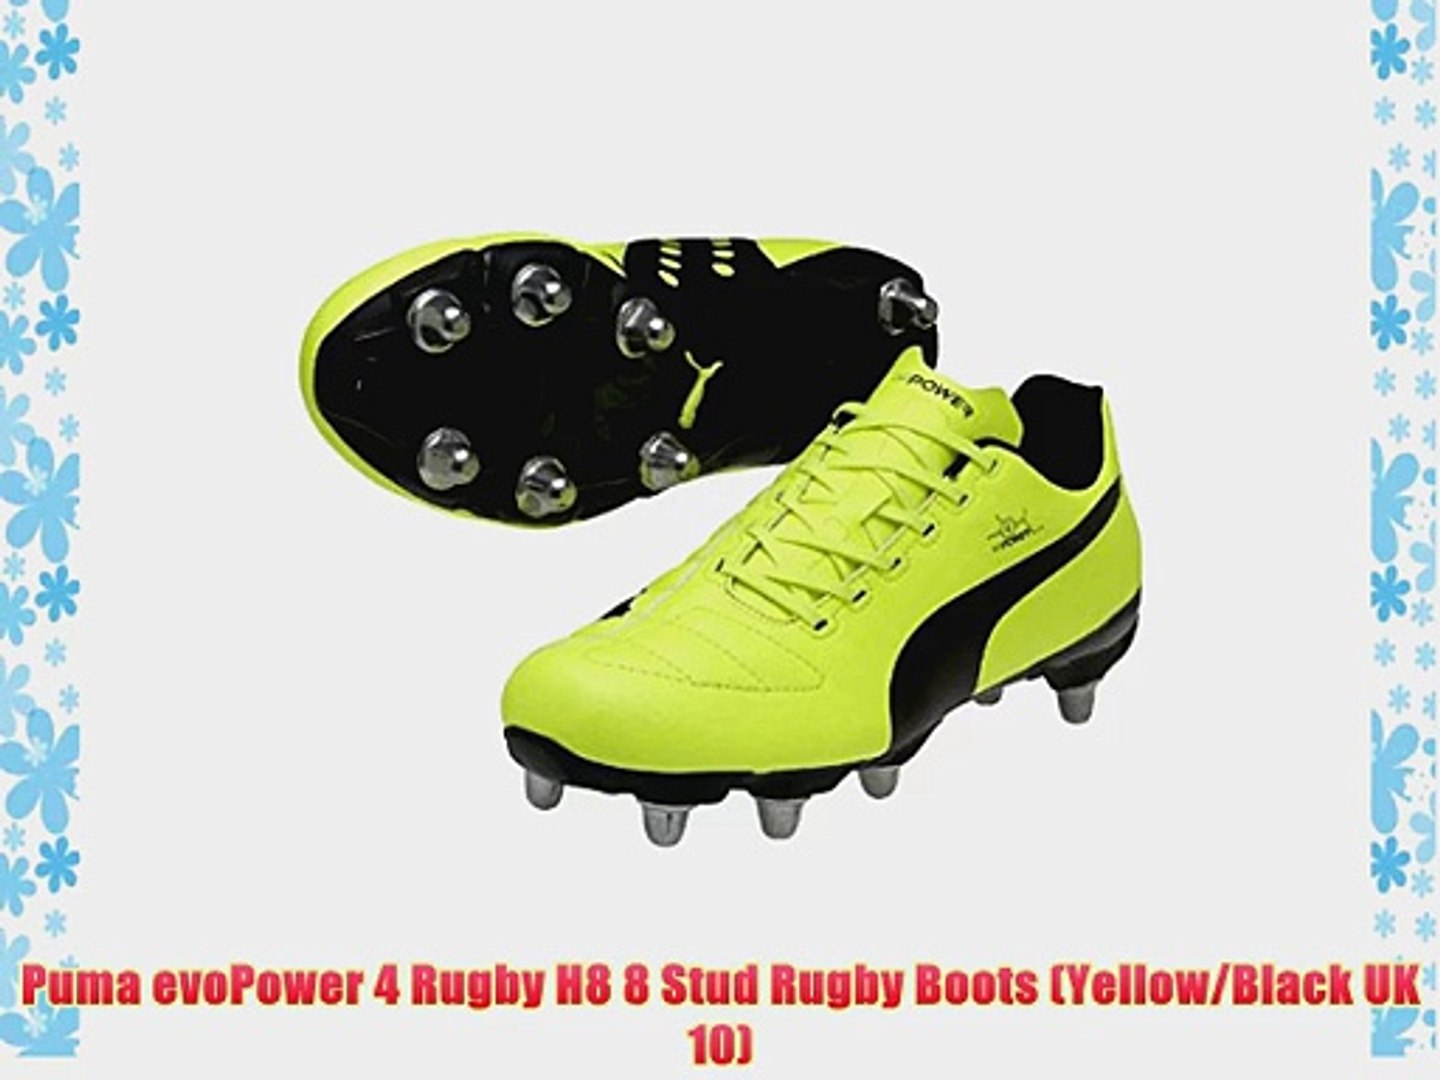 Puma evoPower 4 Rugby H8 8 Stud Rugby Boots (YellowBlack UK 10)